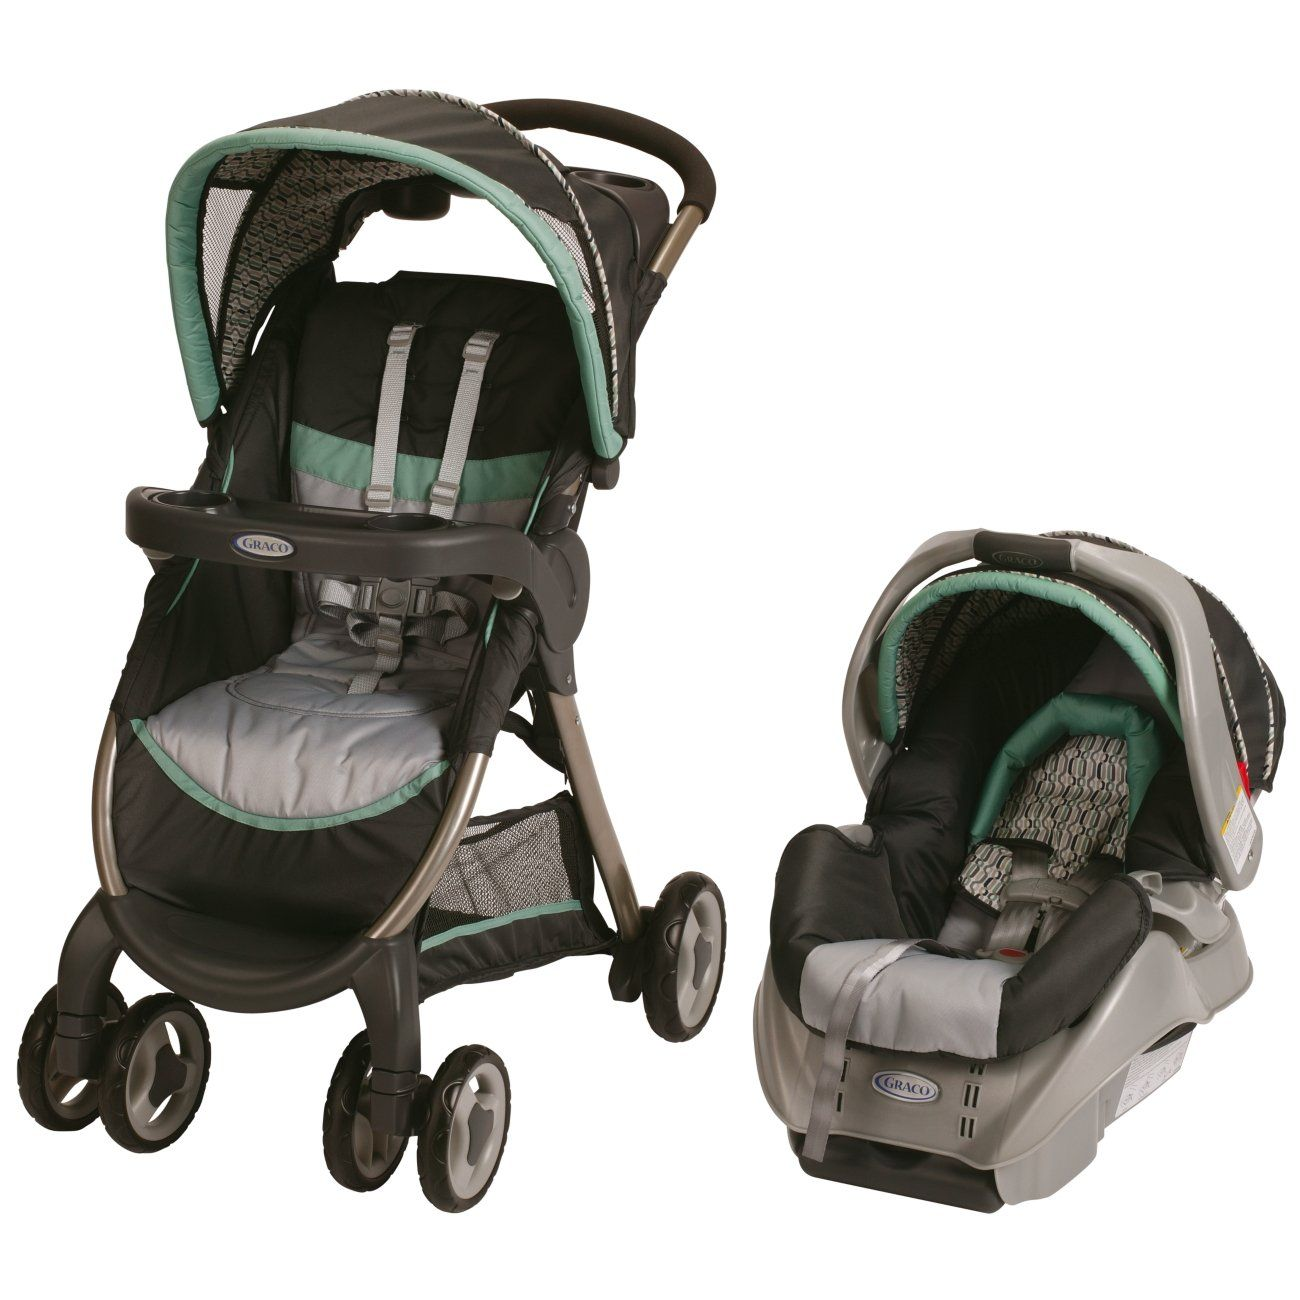 Graco Fastaction Fold Stroller Click Connect